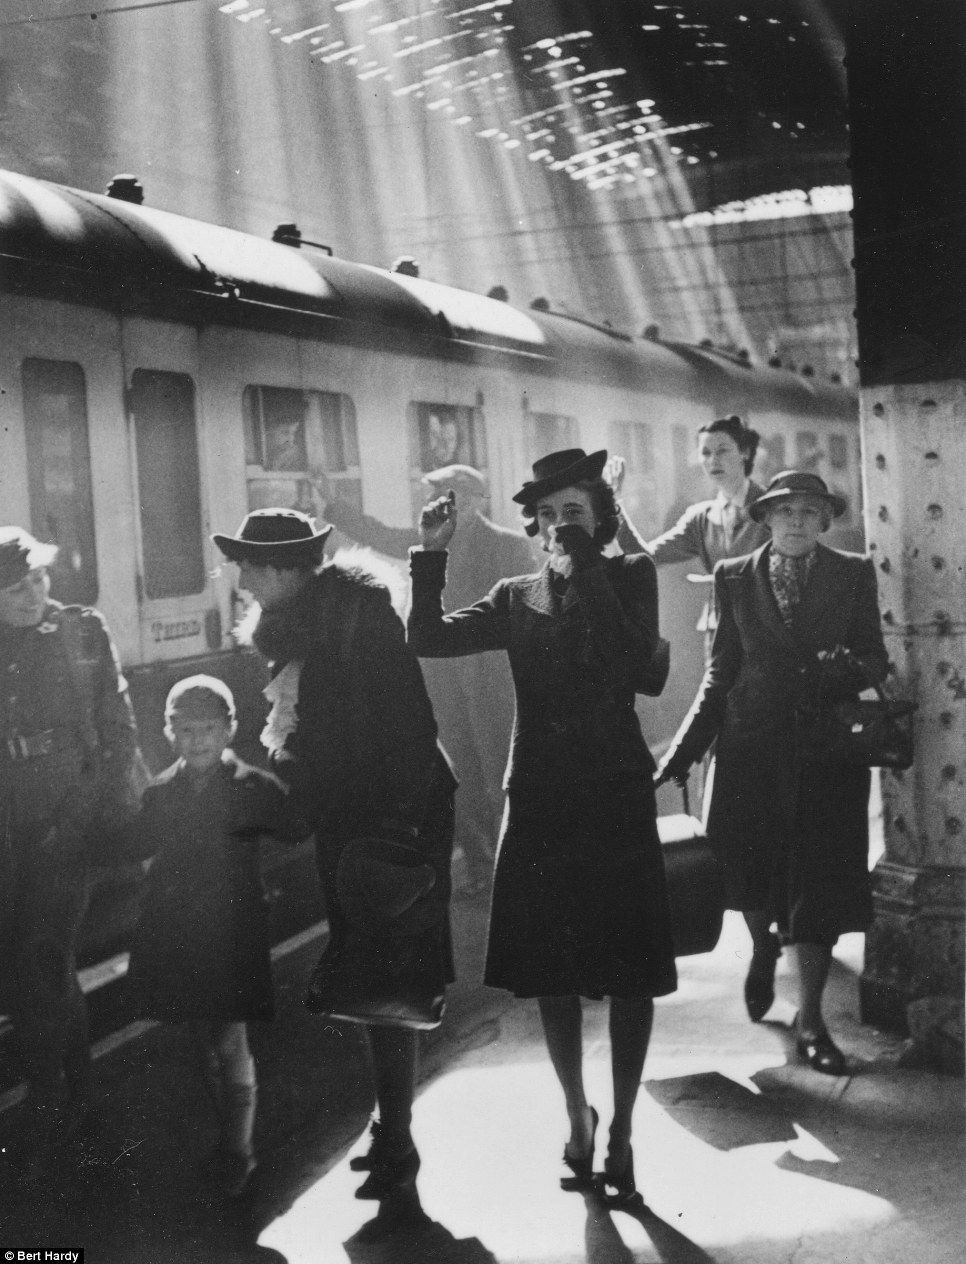 A woman bids farewell at Paddington Station in 1942 as her child is evacuated during the Blitz - lovely series of photographs taken by Bert Hardy, WW11 photographer